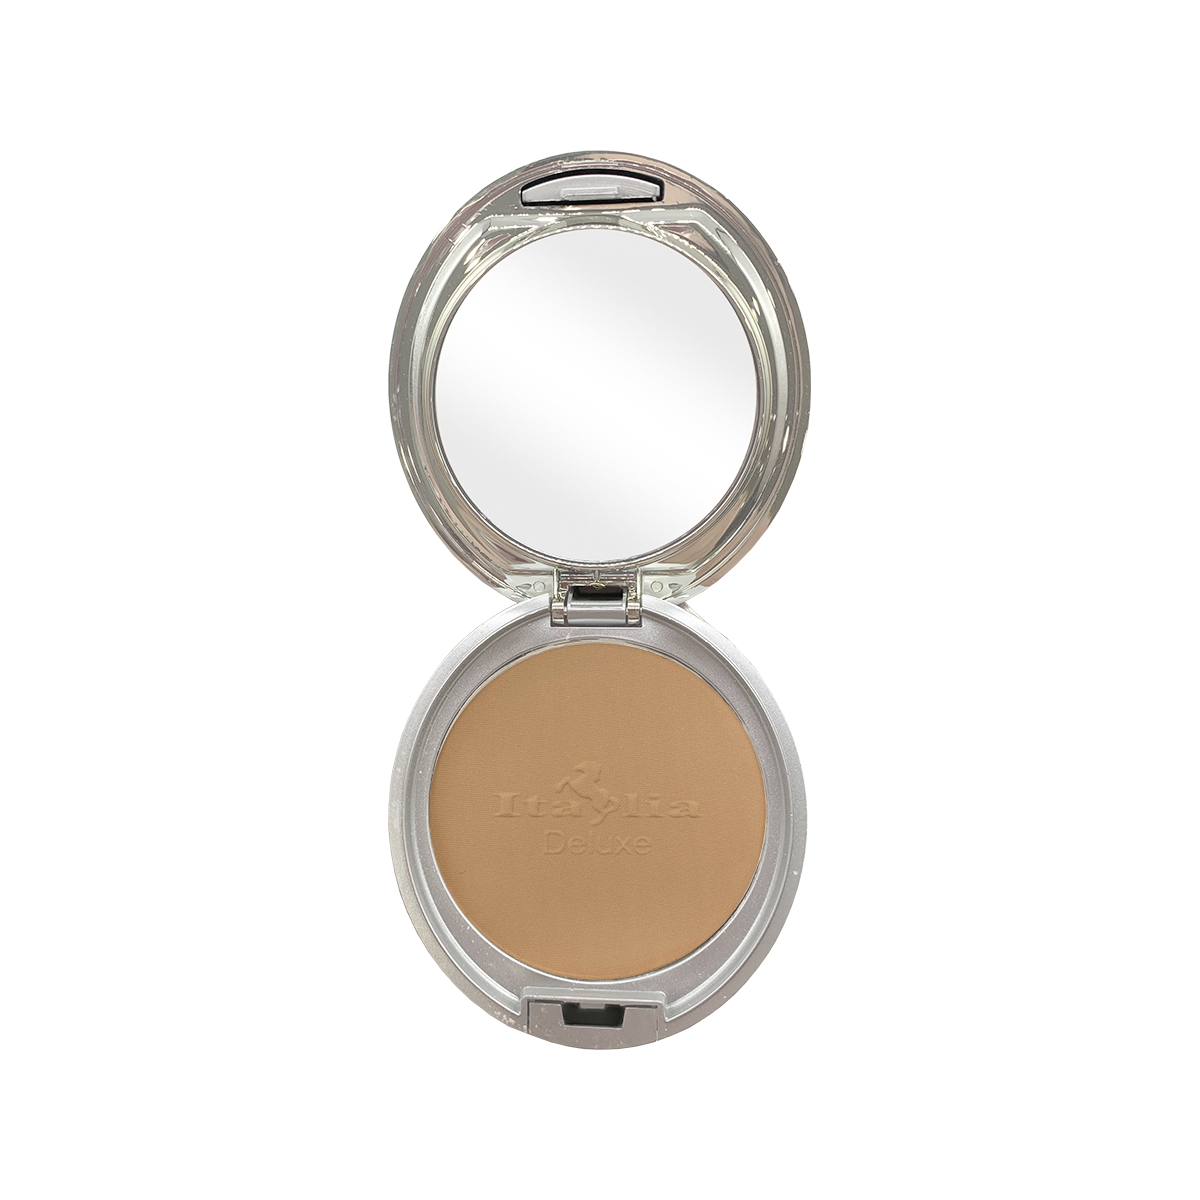 Silver Pressed Foundation Powder